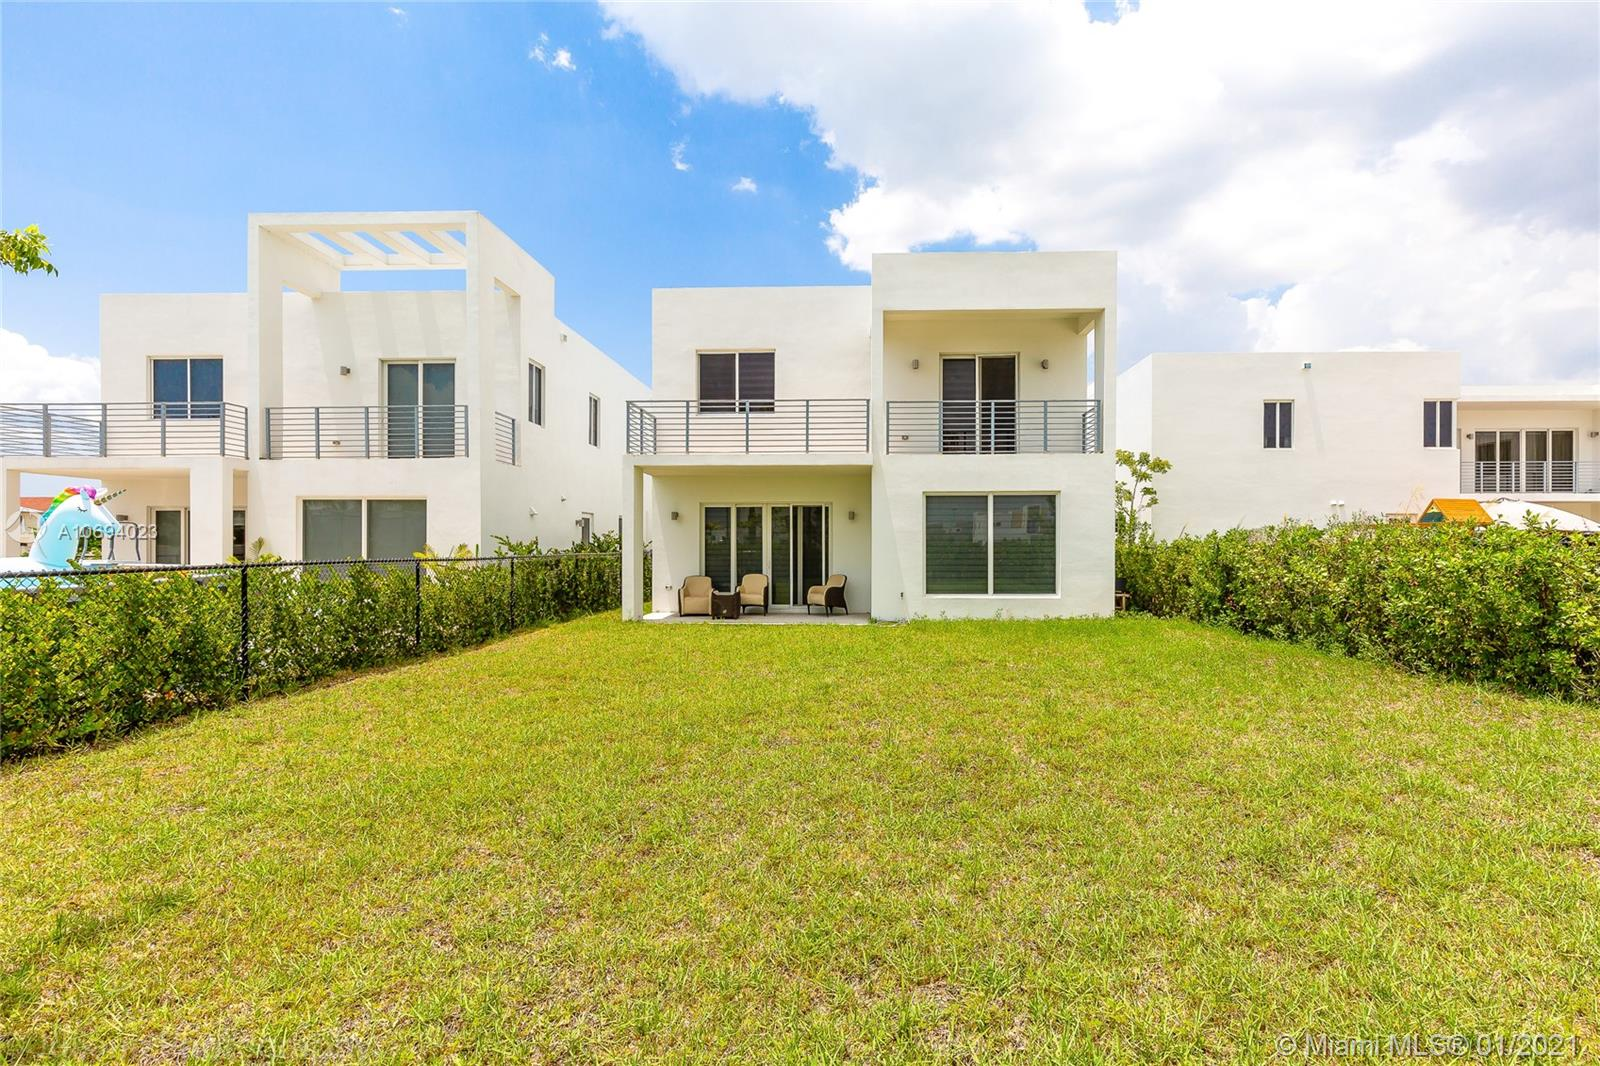 Amazing, MODERN LUXURY HOME, with an extra lot of patio, one of the few new houses in Doral with extra Lot, 1 Room on the first floor, bathroom with direct access to the patio.MAKE A COMPLETE ENTERTAINMENT in the patio. In the best Location in Doral.OWNER MOTIVATED.